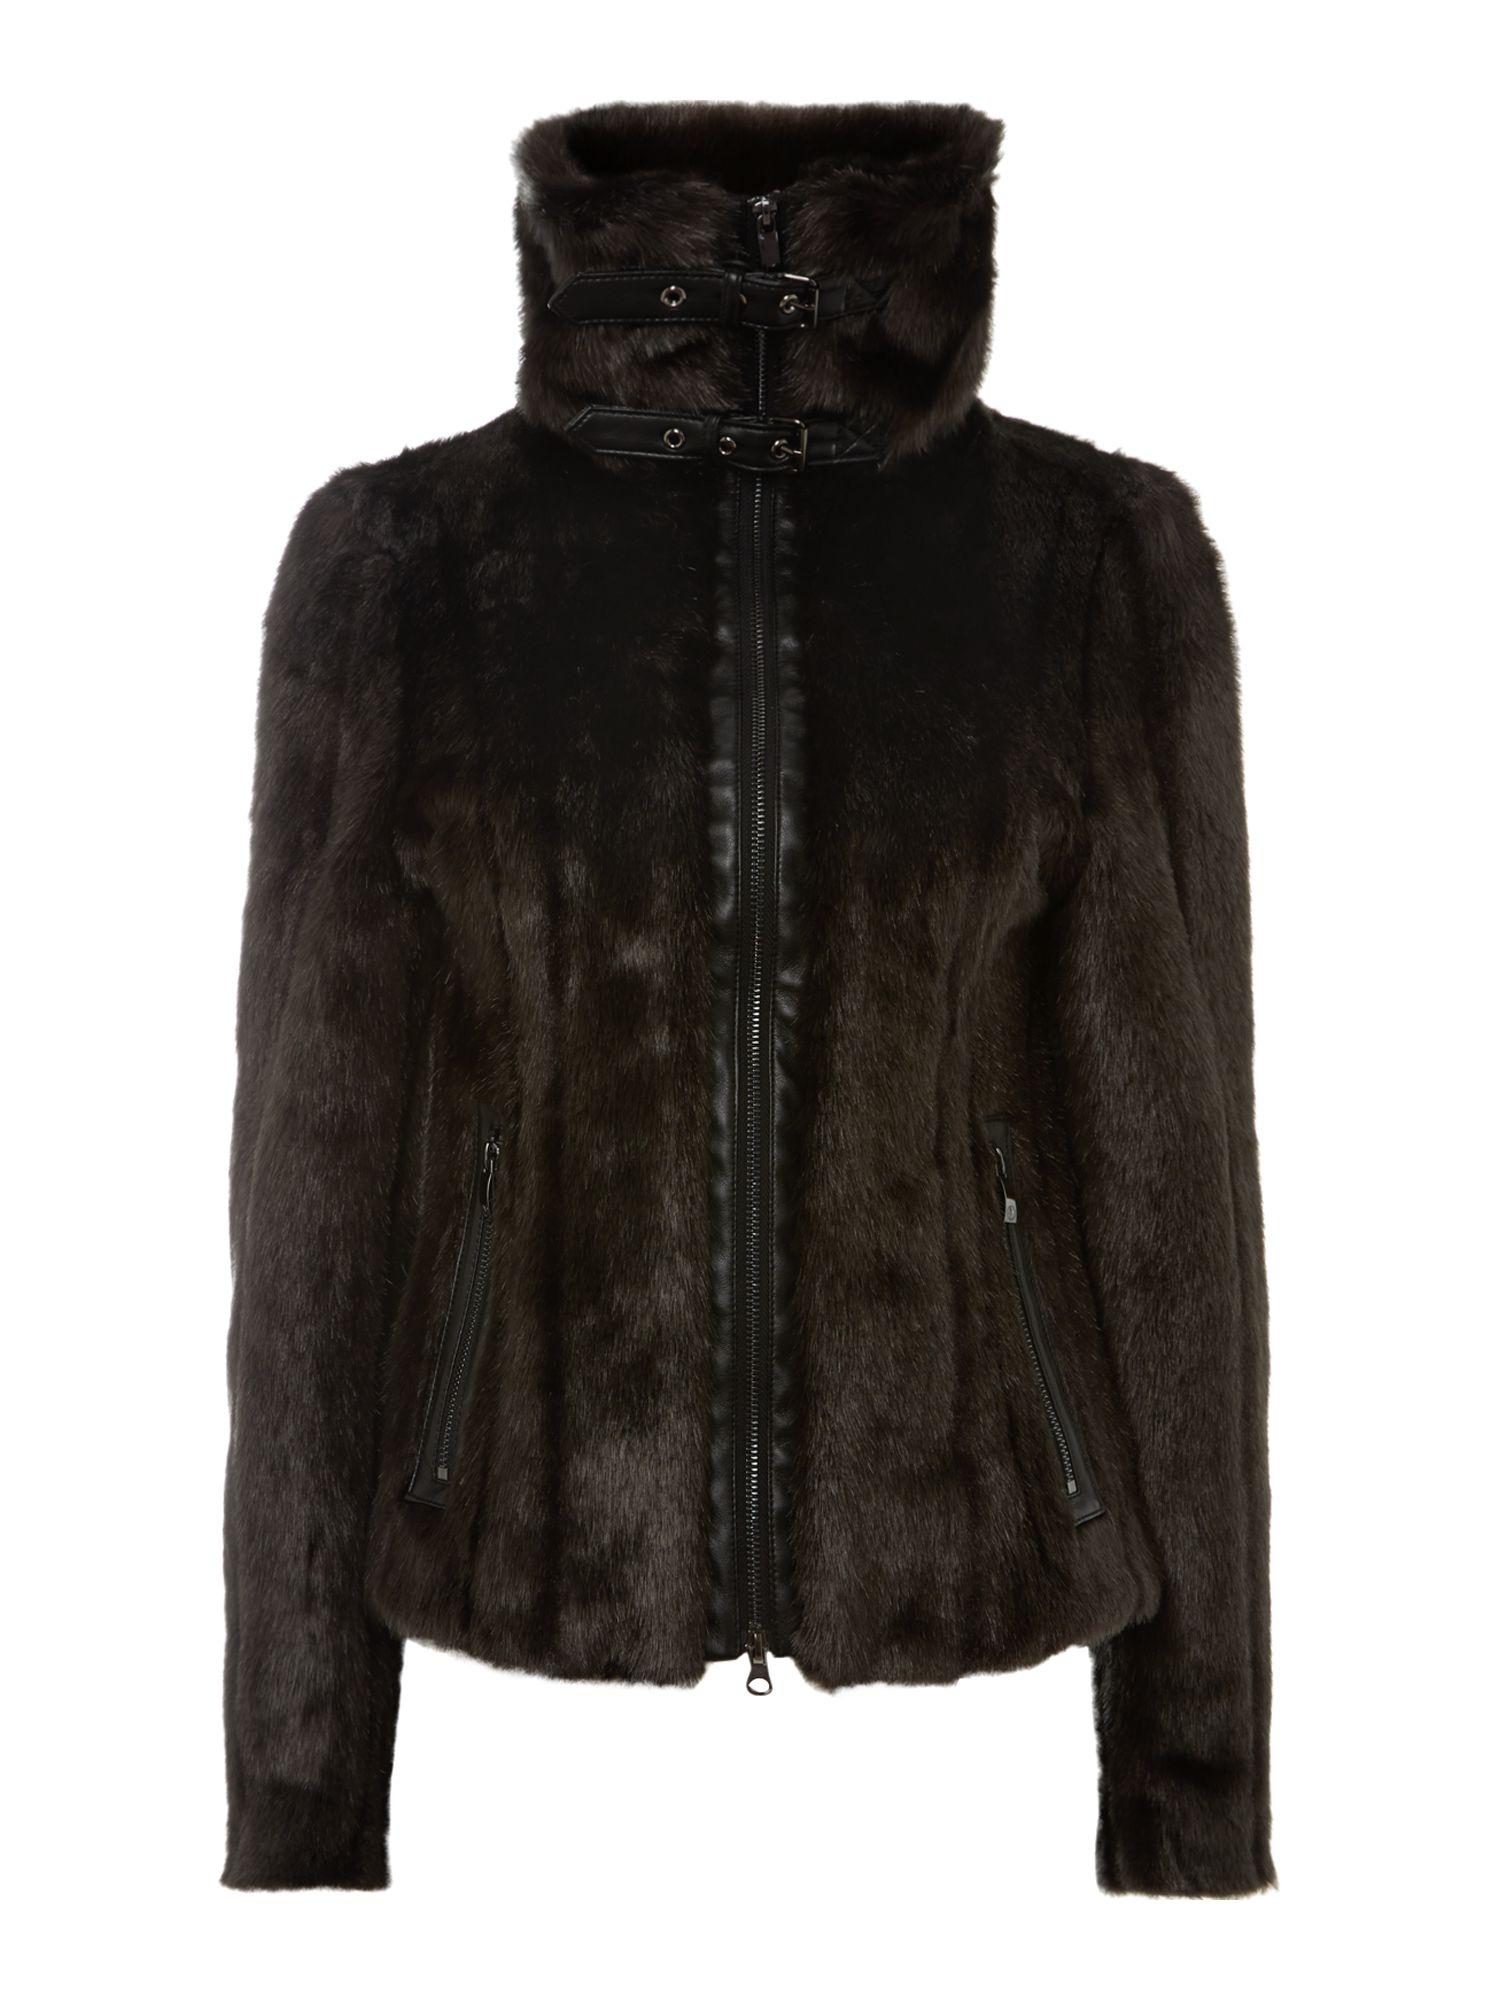 Short faux fur jacket with a big collar